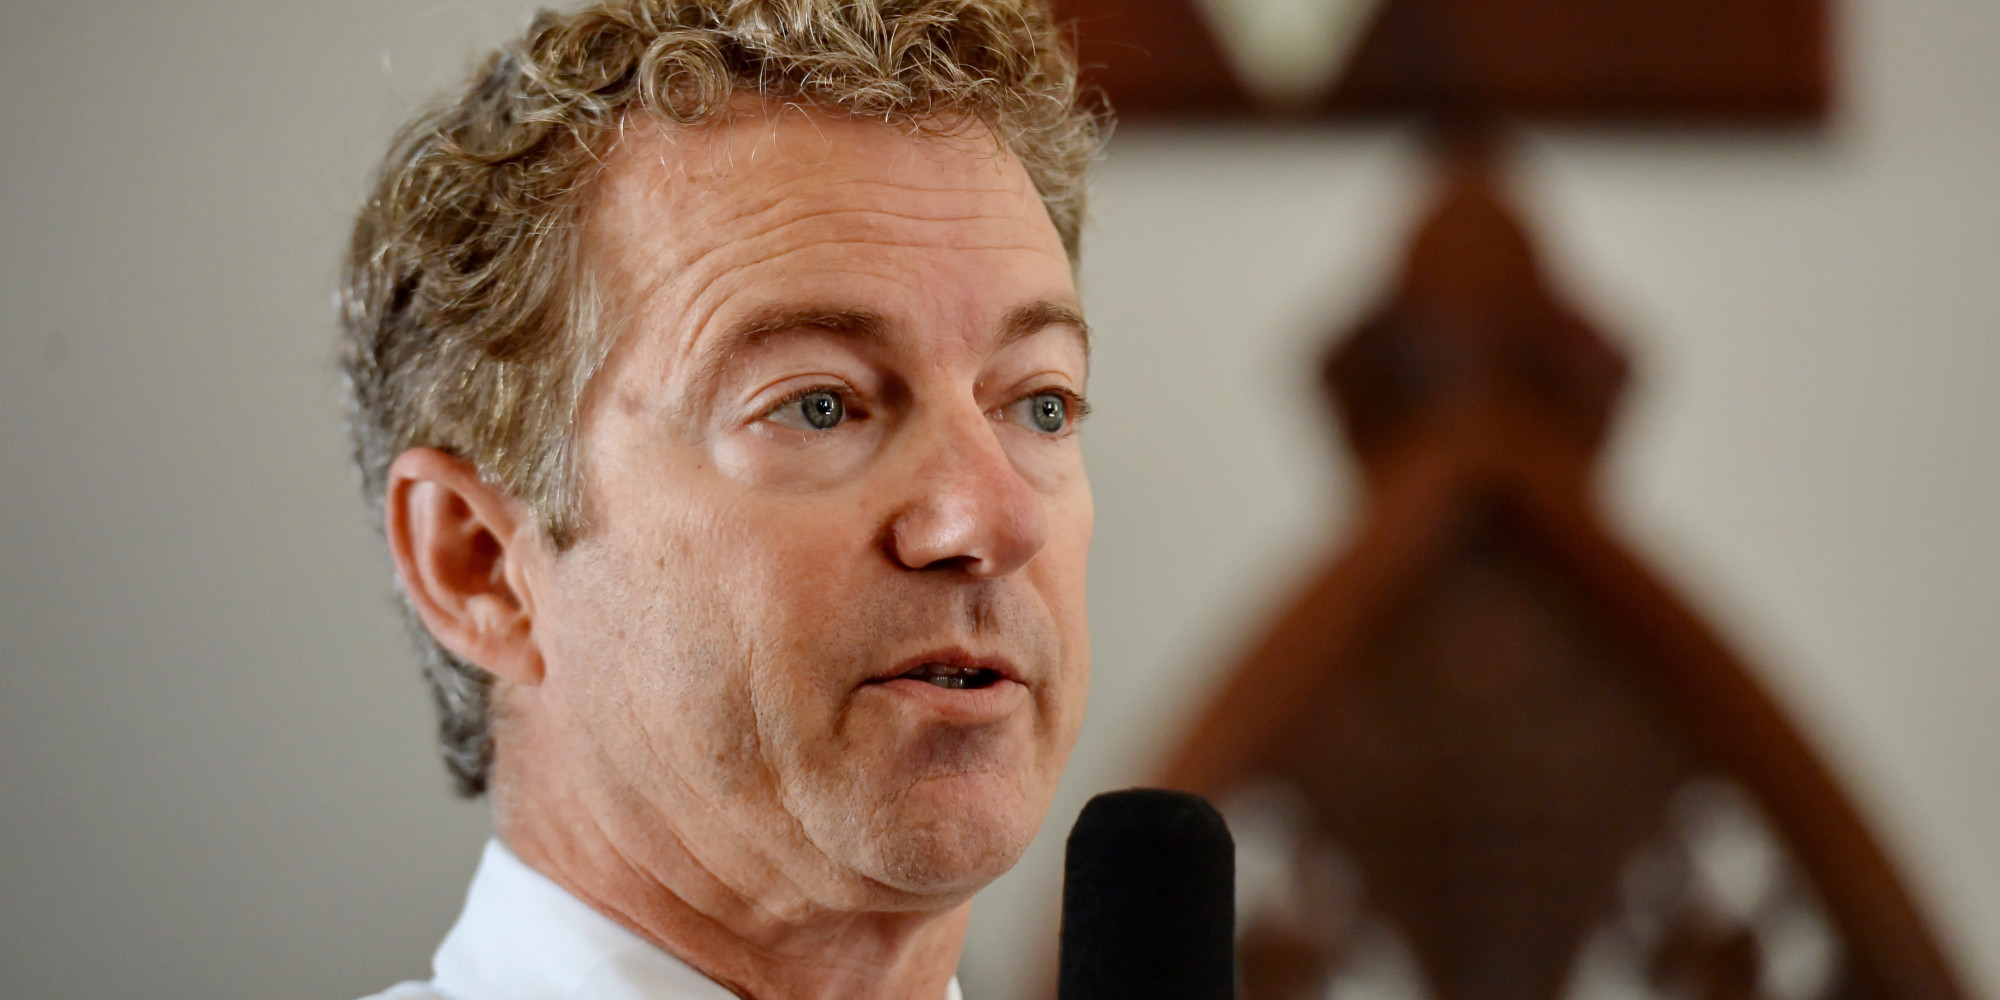 rand paul announces he s running for president in 2016 the rand paul announces he s running for president in 2016 the huffington post